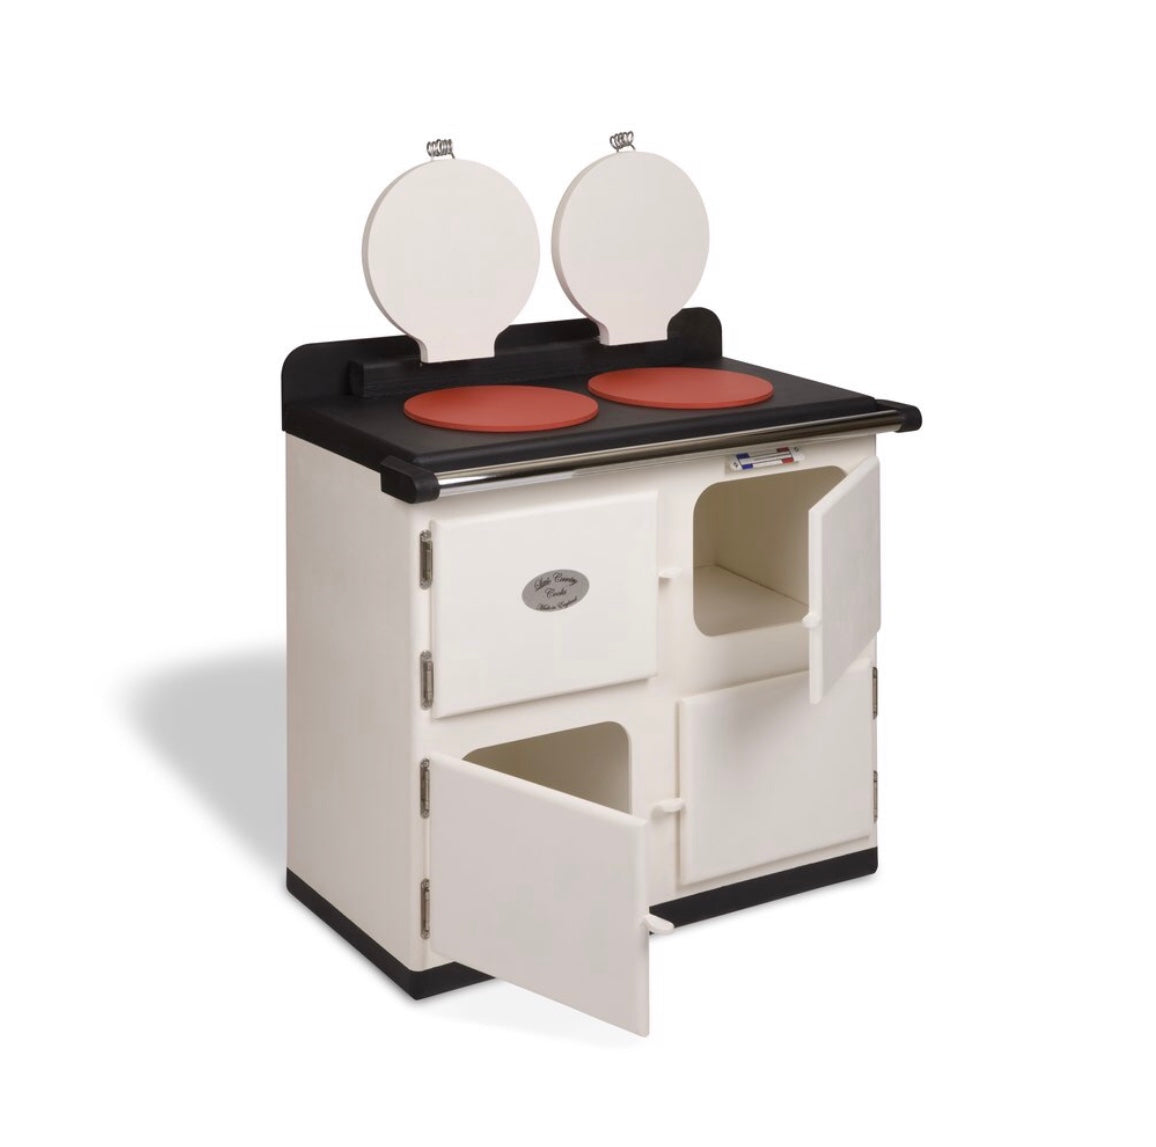 Children's Toy Cooker In Cream